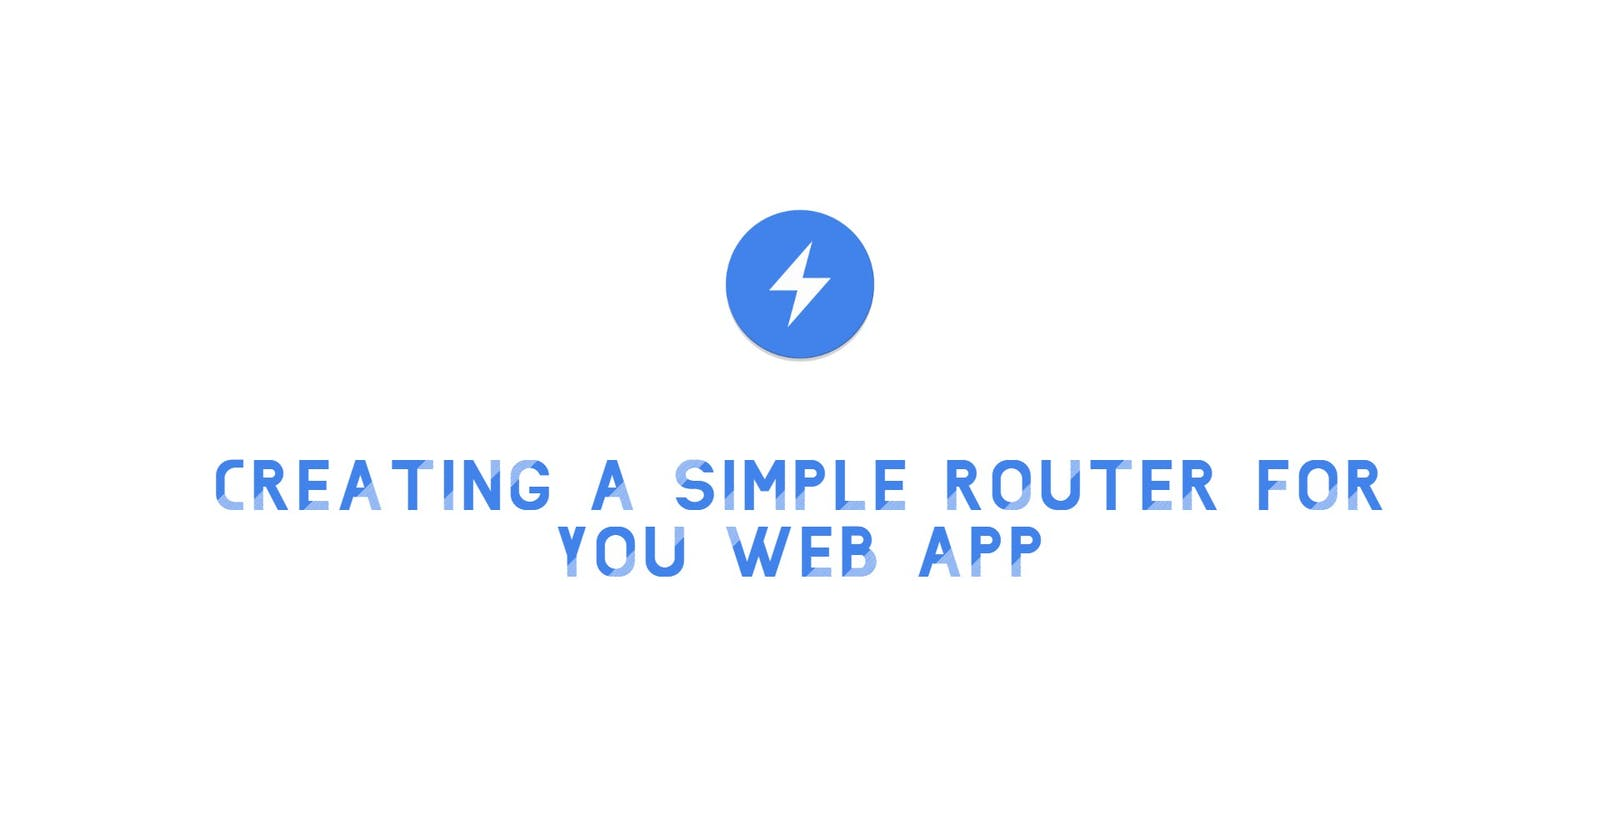 Creating a Simple Router for you web app